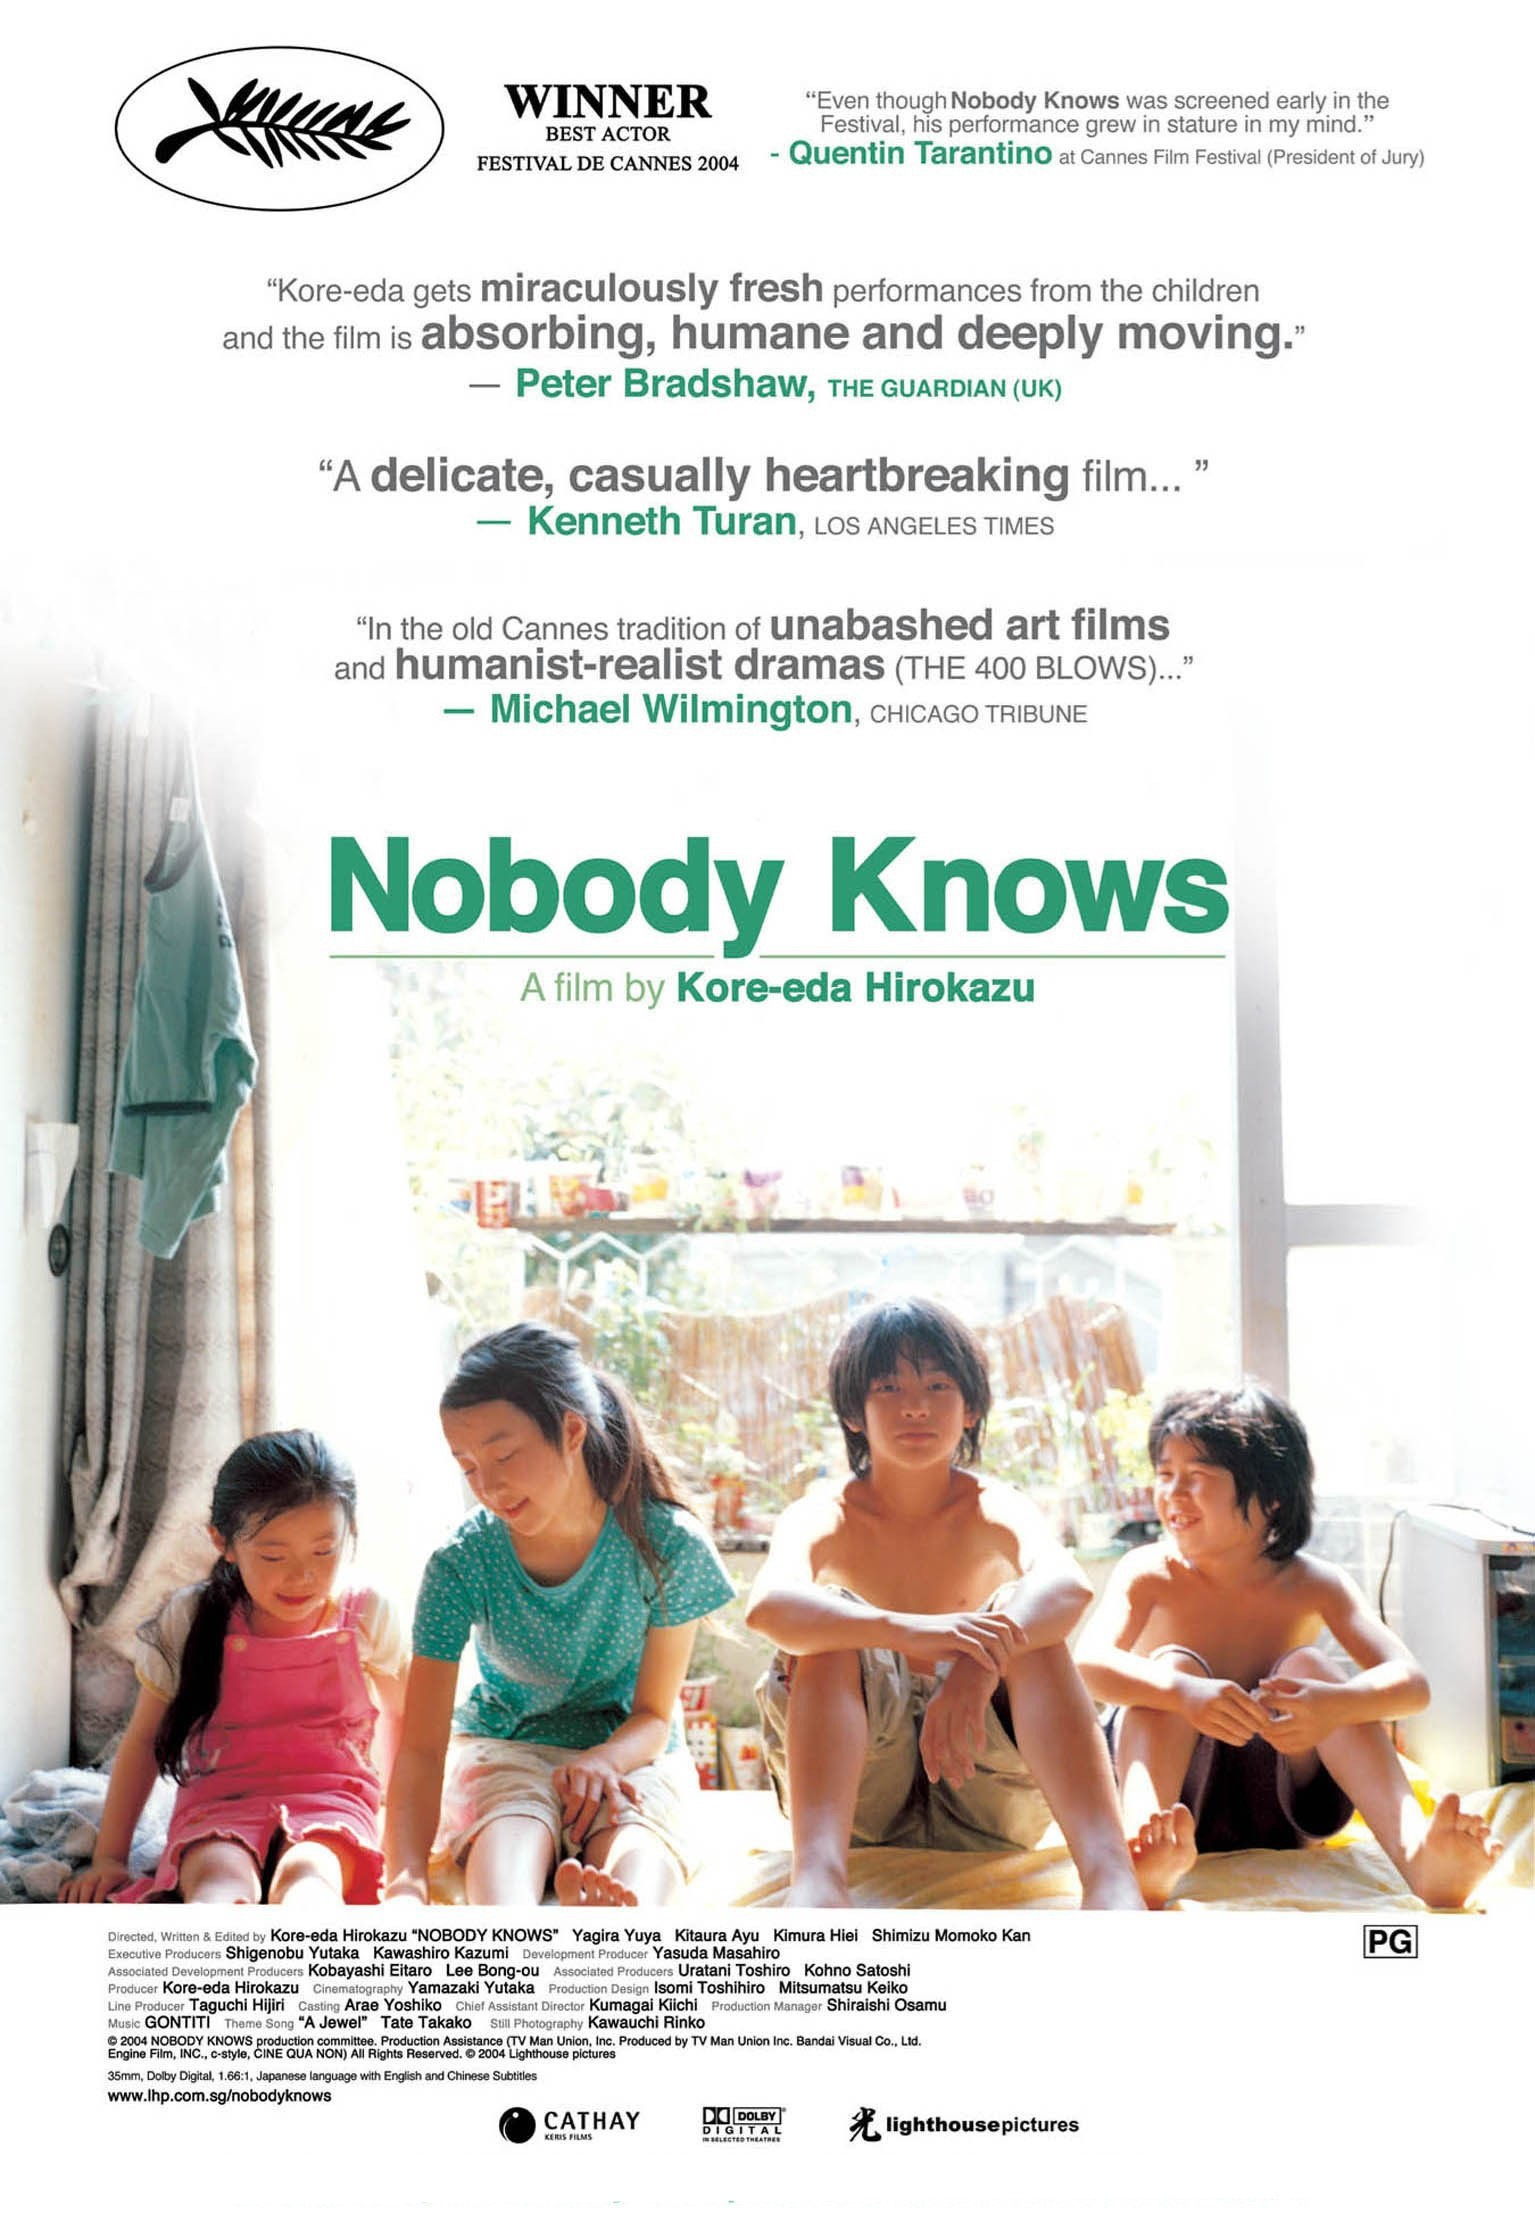 NOBODY KNOWS [Dare mo shiranai]